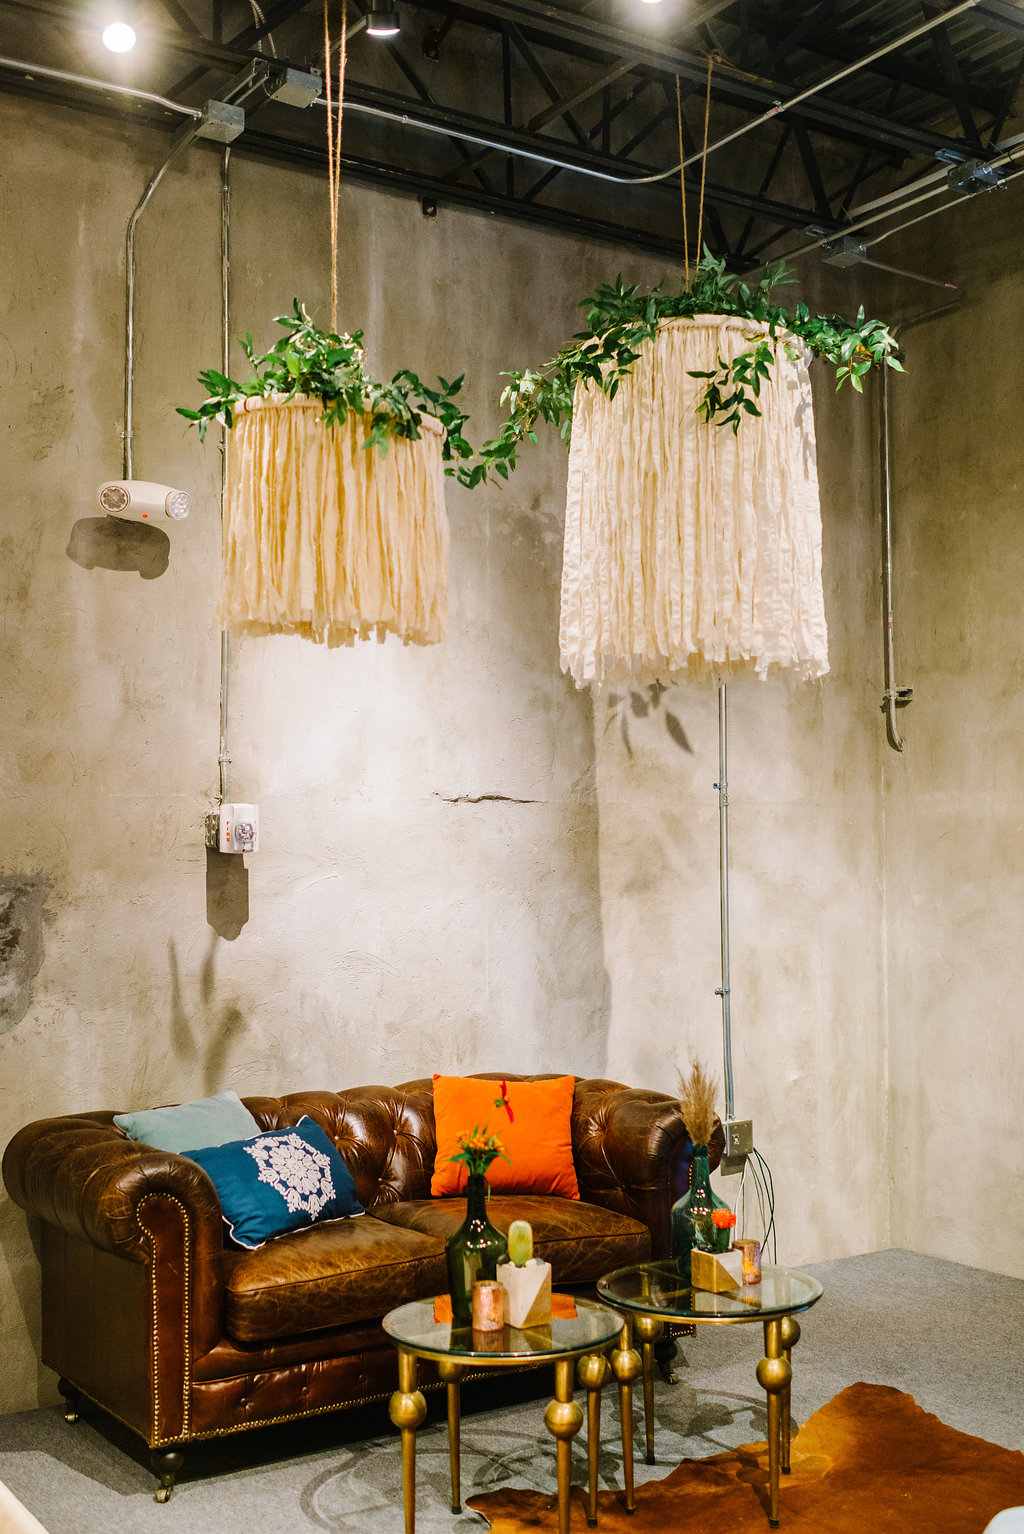 bohemian wedding inspiration - photo by Cathrine Taylor Photography http://ruffledblog.com/colorful-alabama-wedding-with-desert-accents